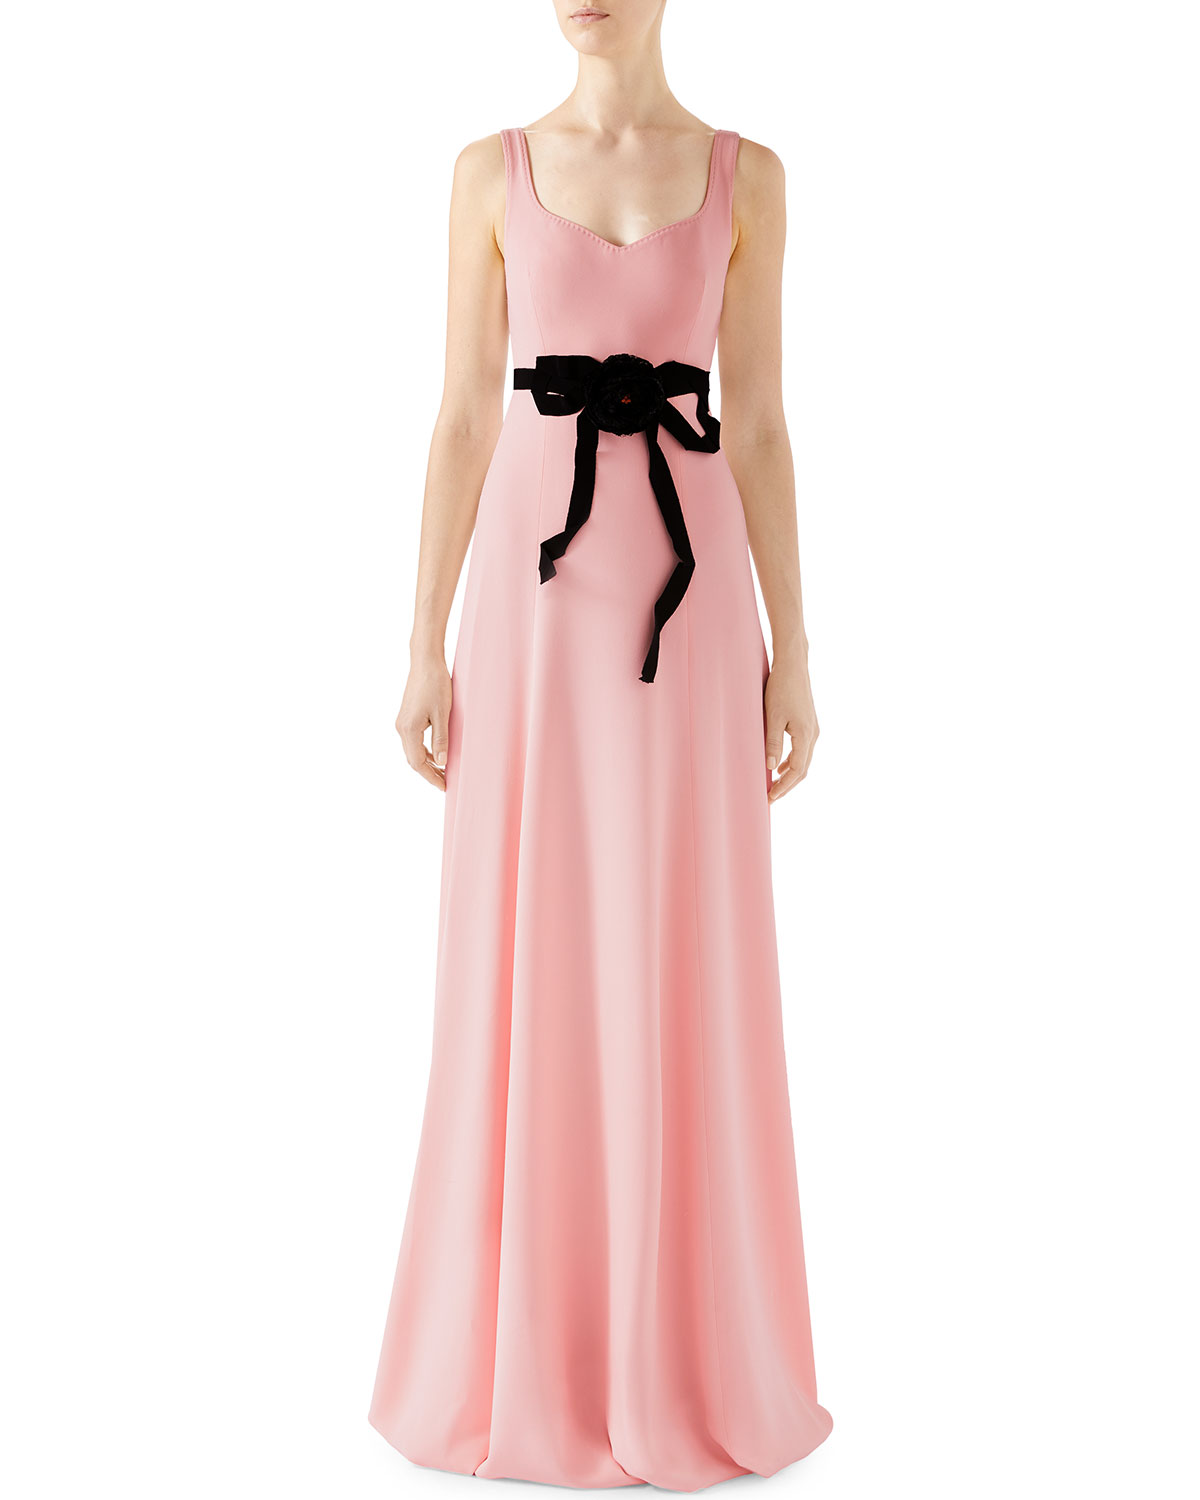 pink gucci gown with black bow